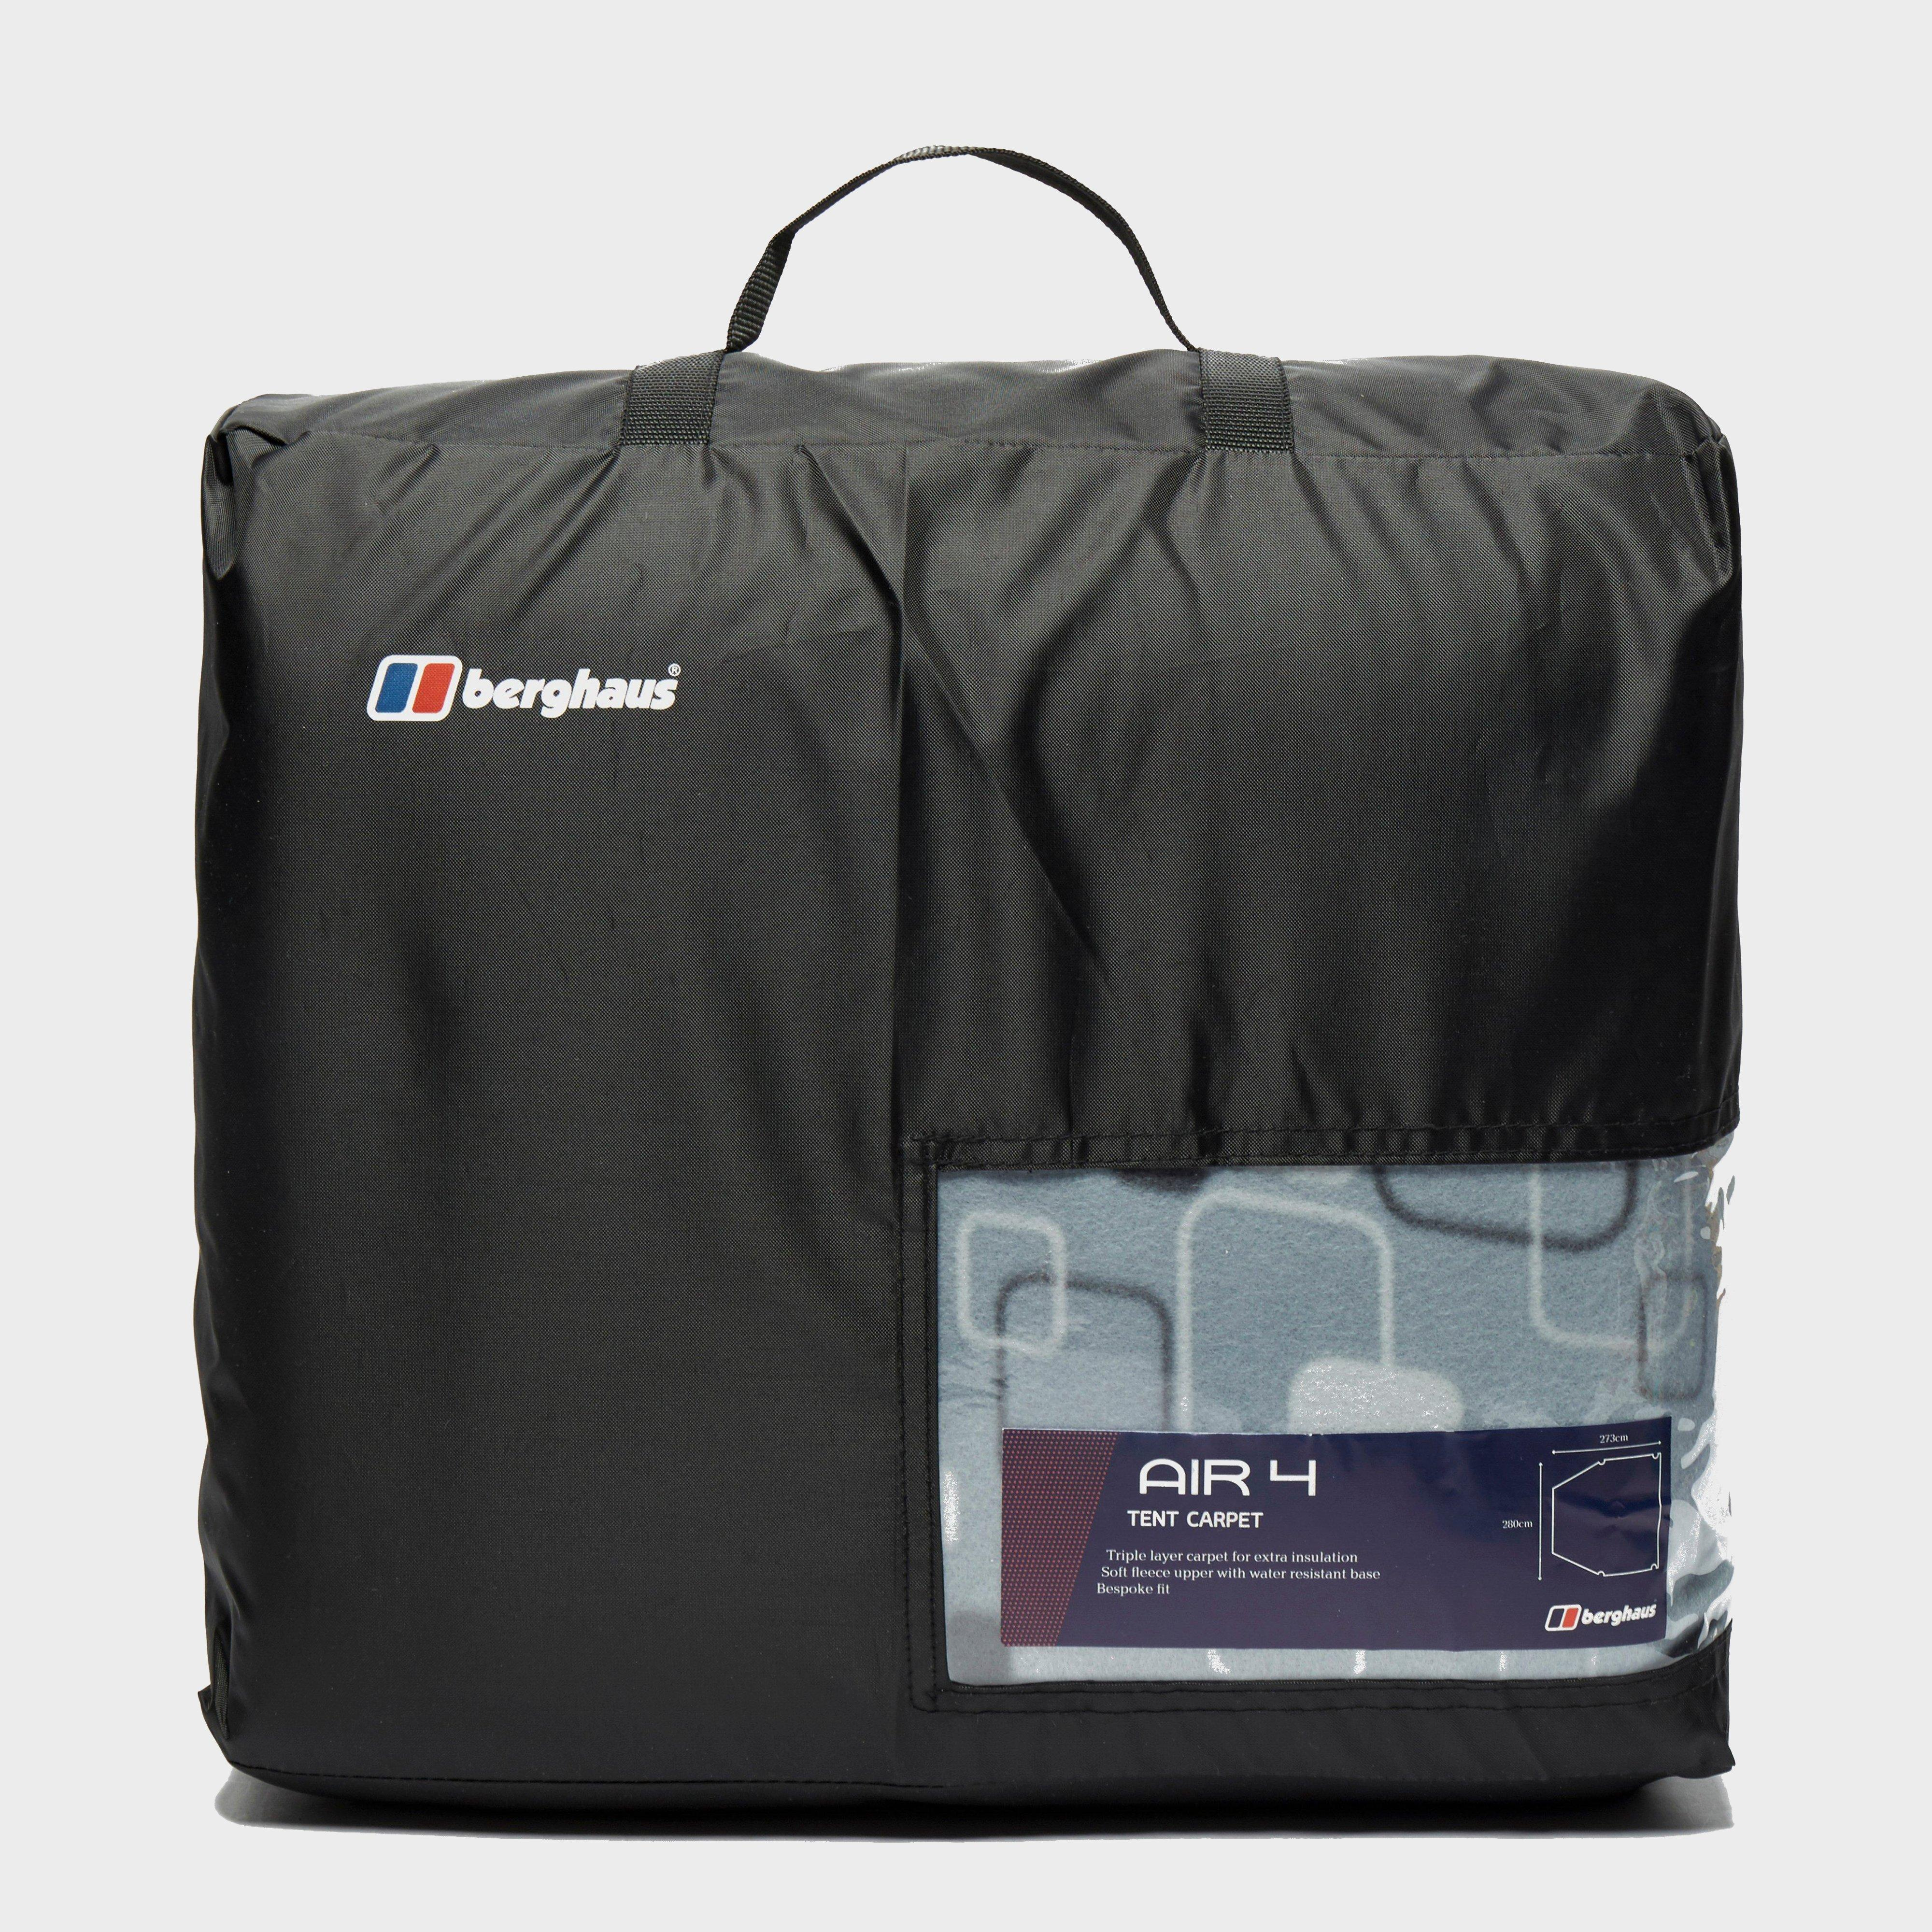 Berghaus Air 4 Carpet